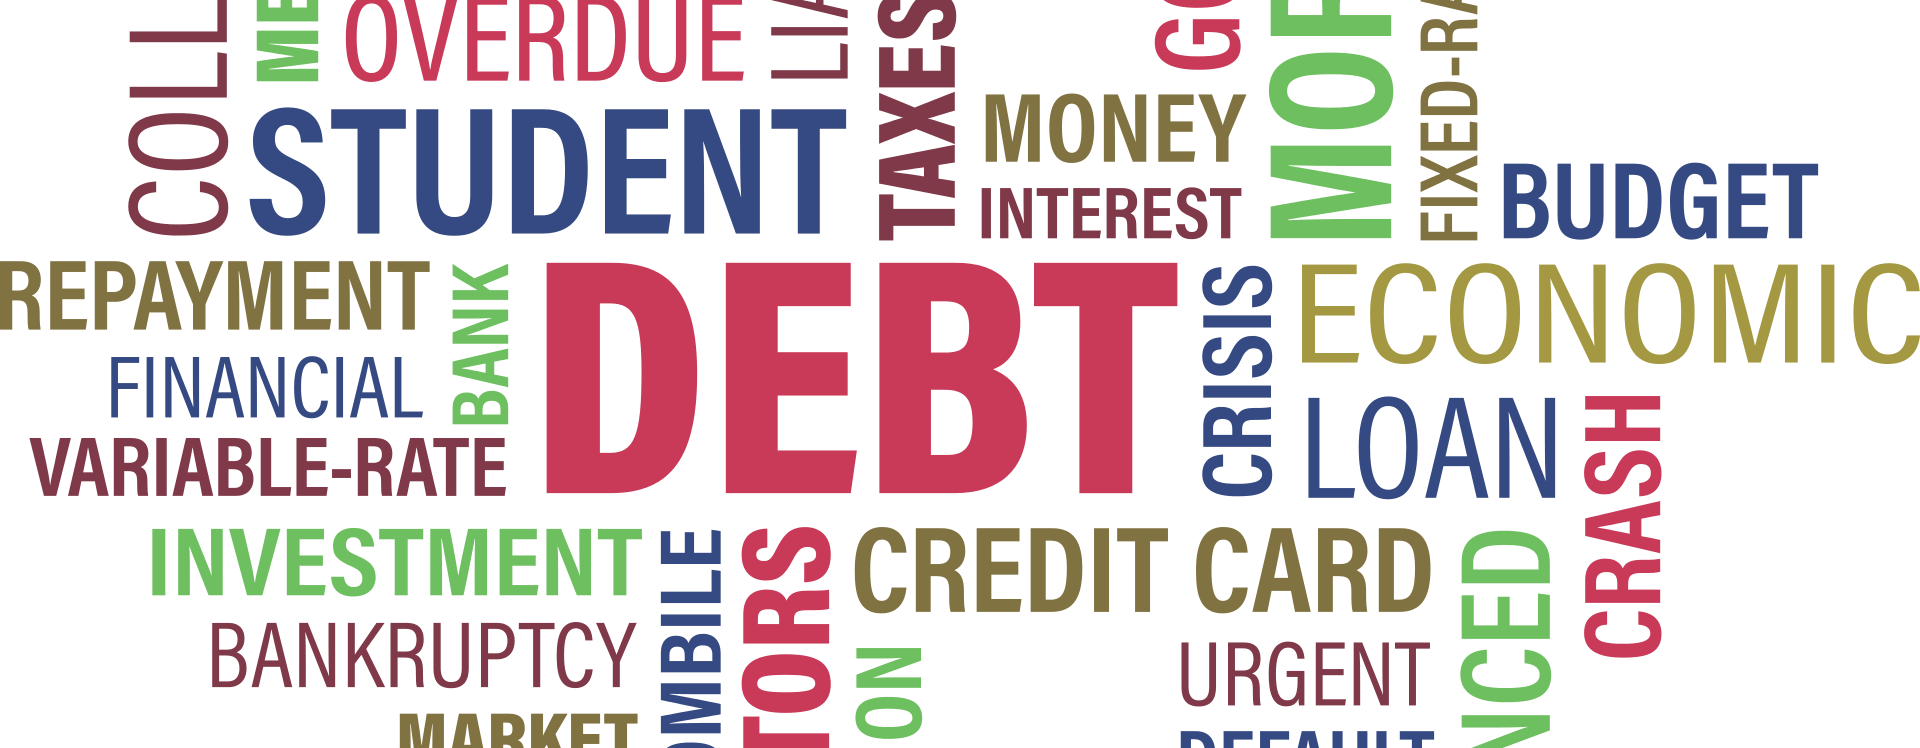 student loan debt word cloud repayment loans education